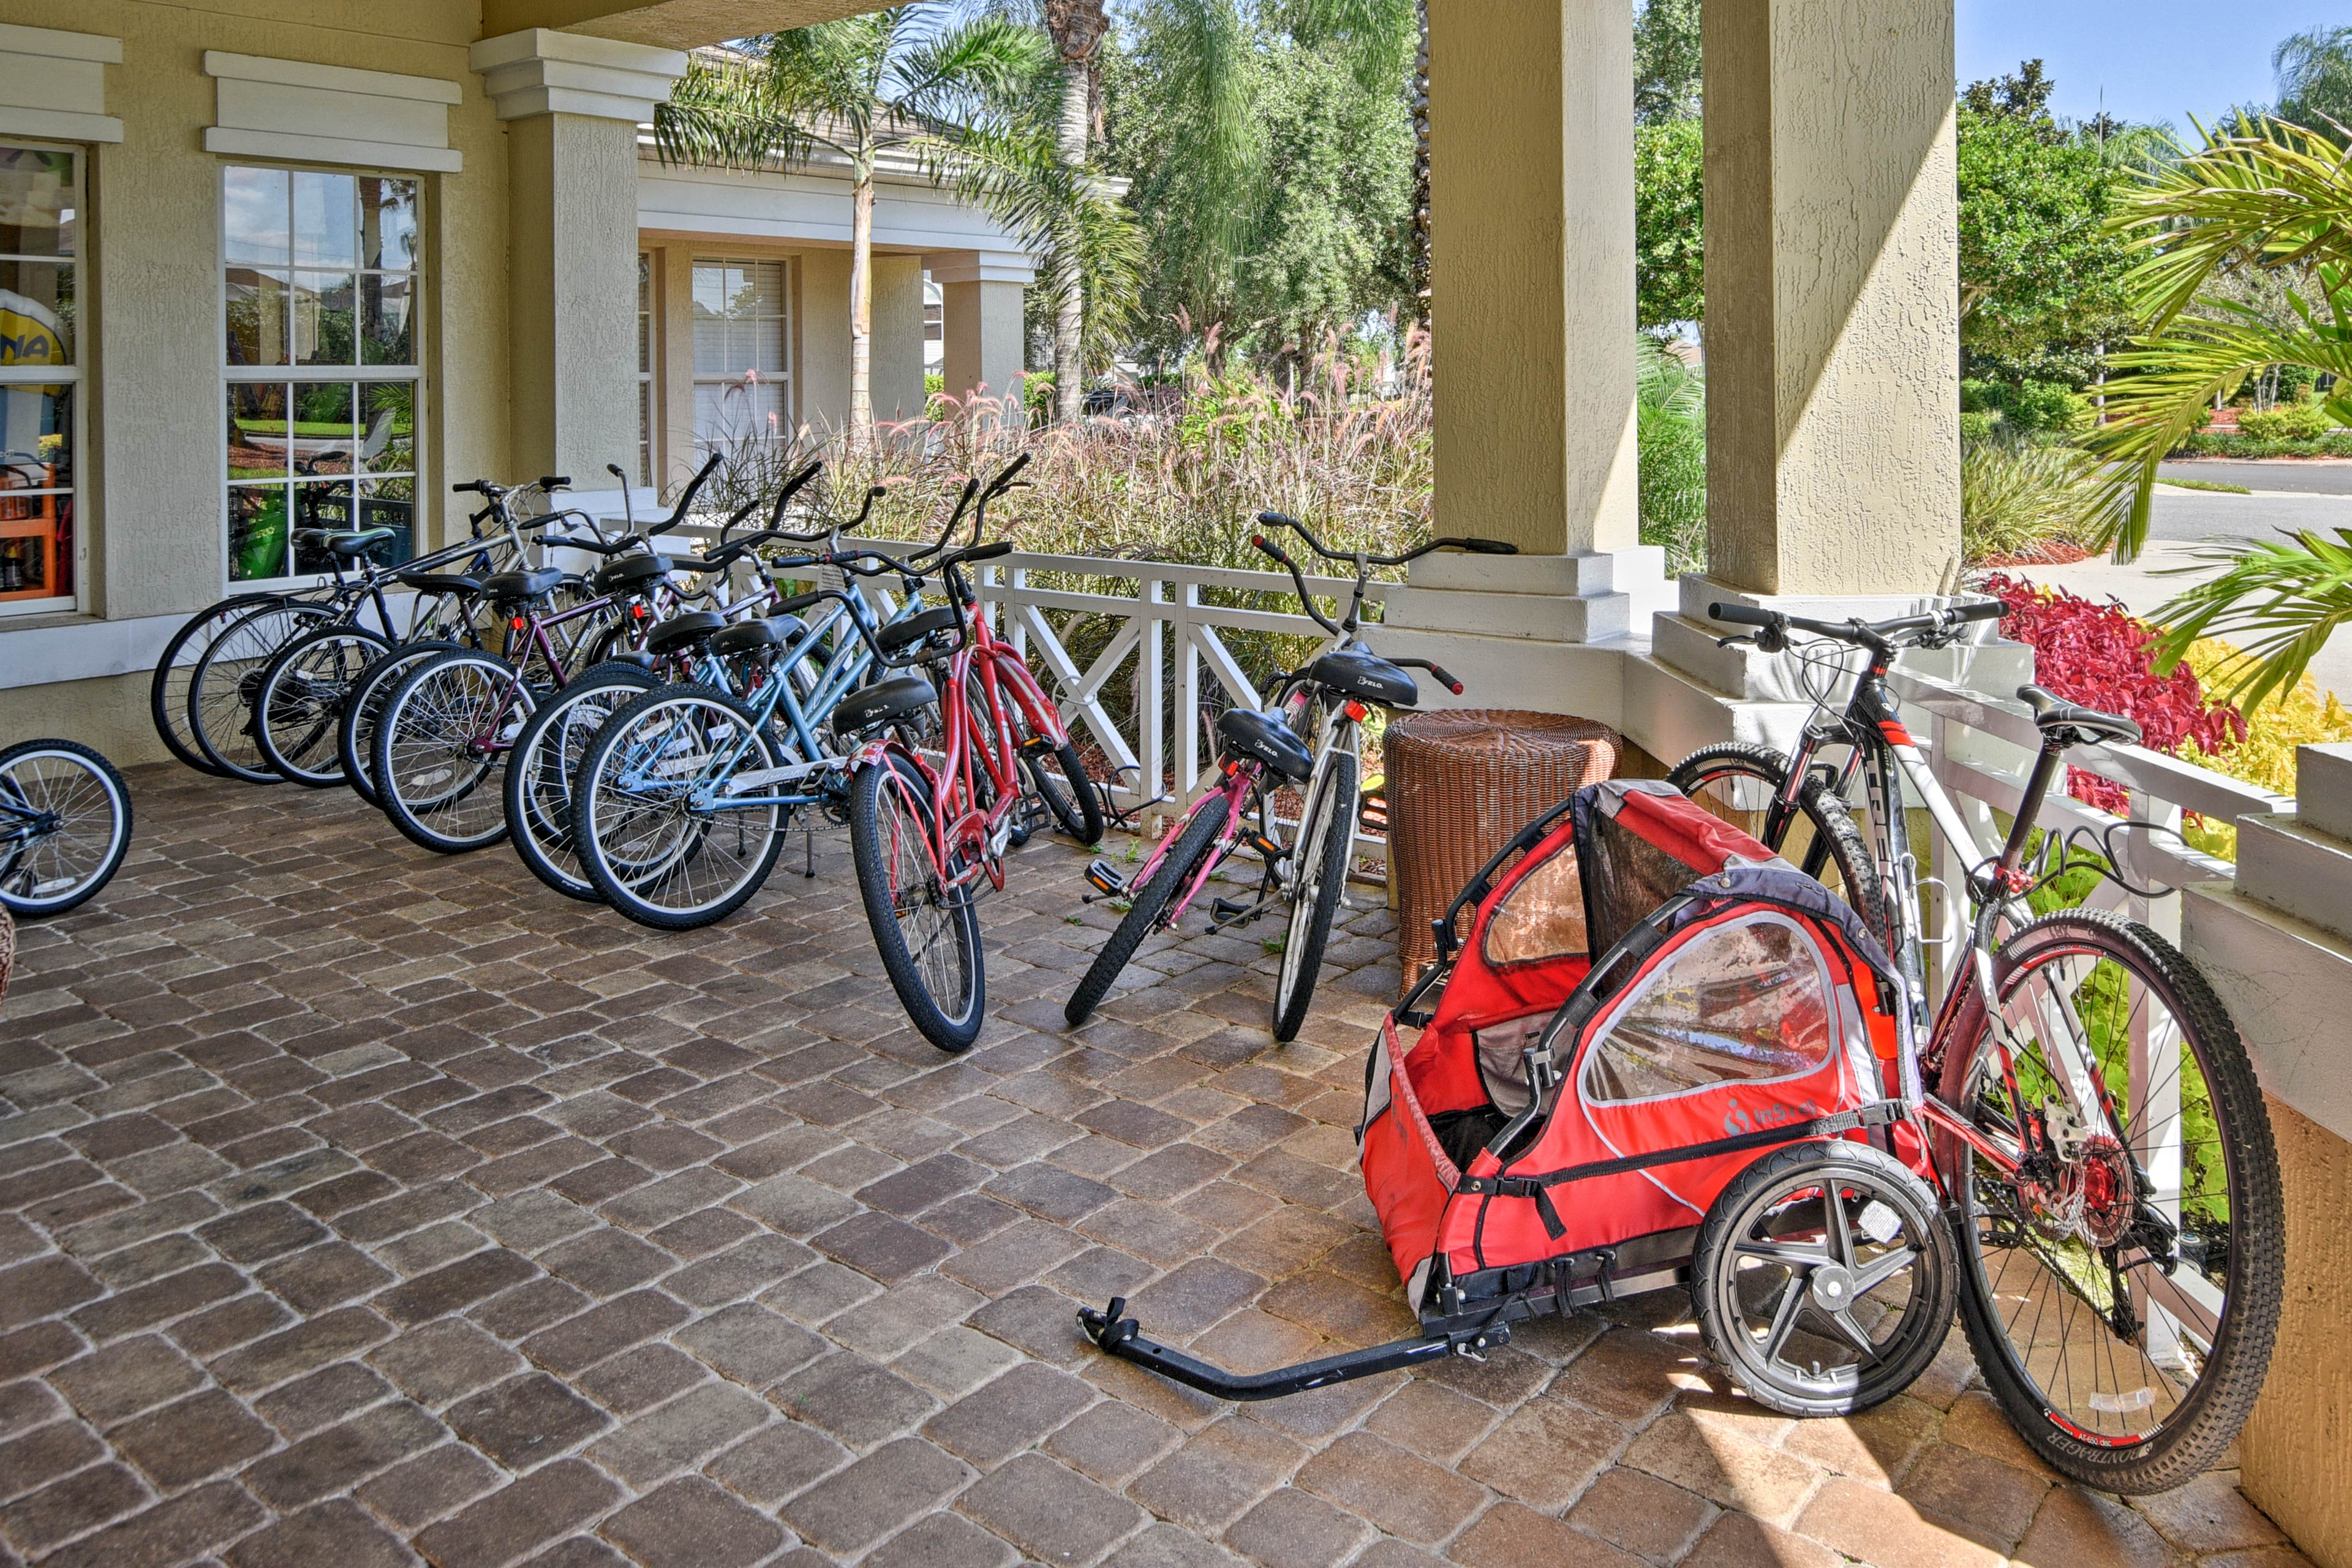 Rent a bike and explore nearby parks and lakes.